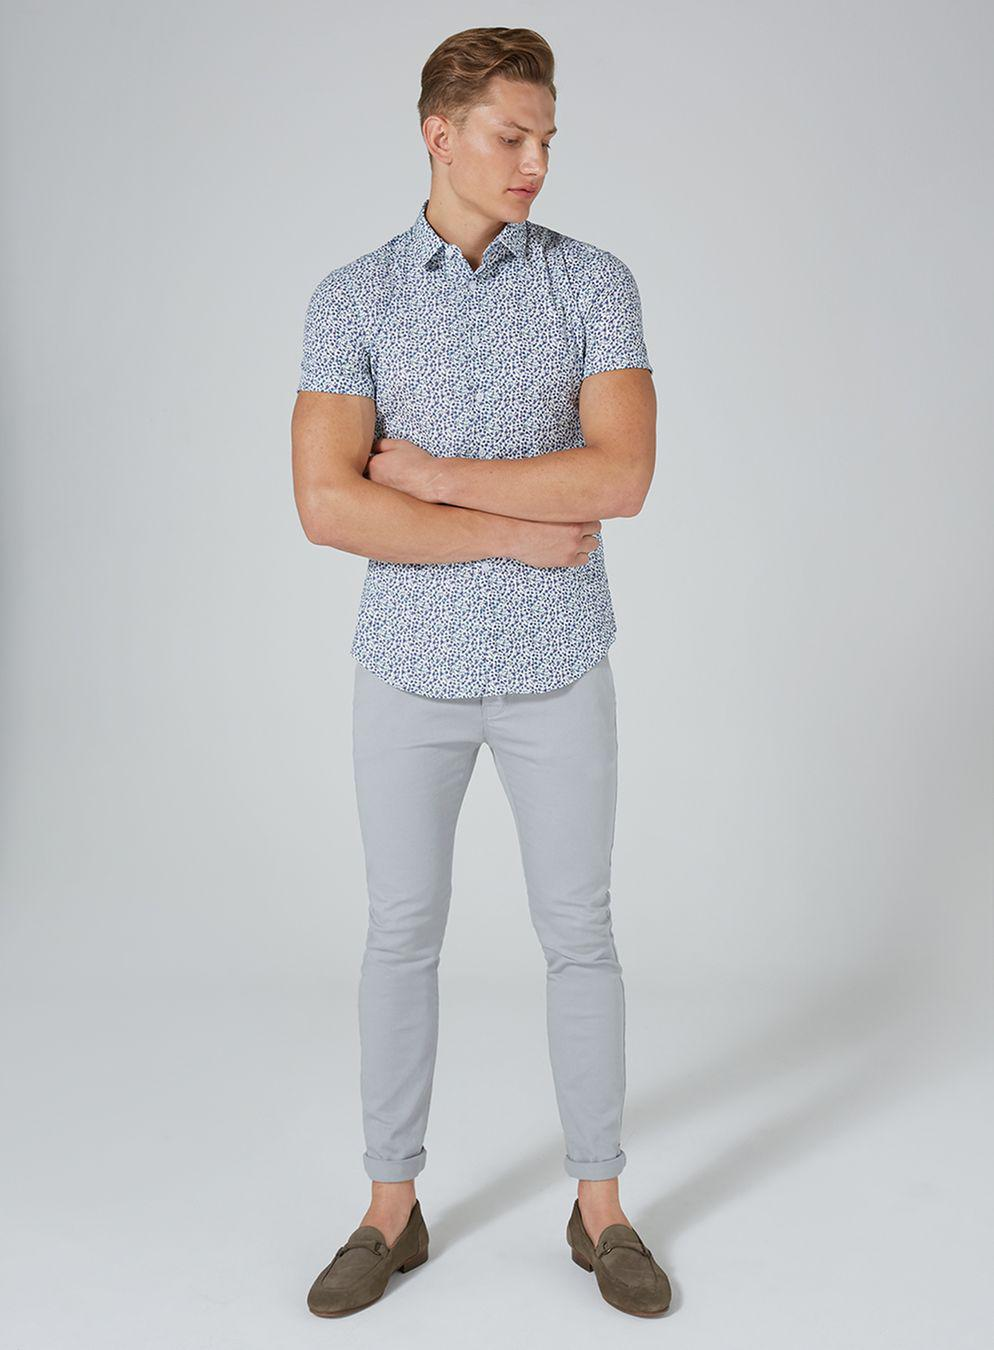 b6ad8adfcc1 Lyst - TOPMAN White And Blue Floral Shirt in Blue for Men